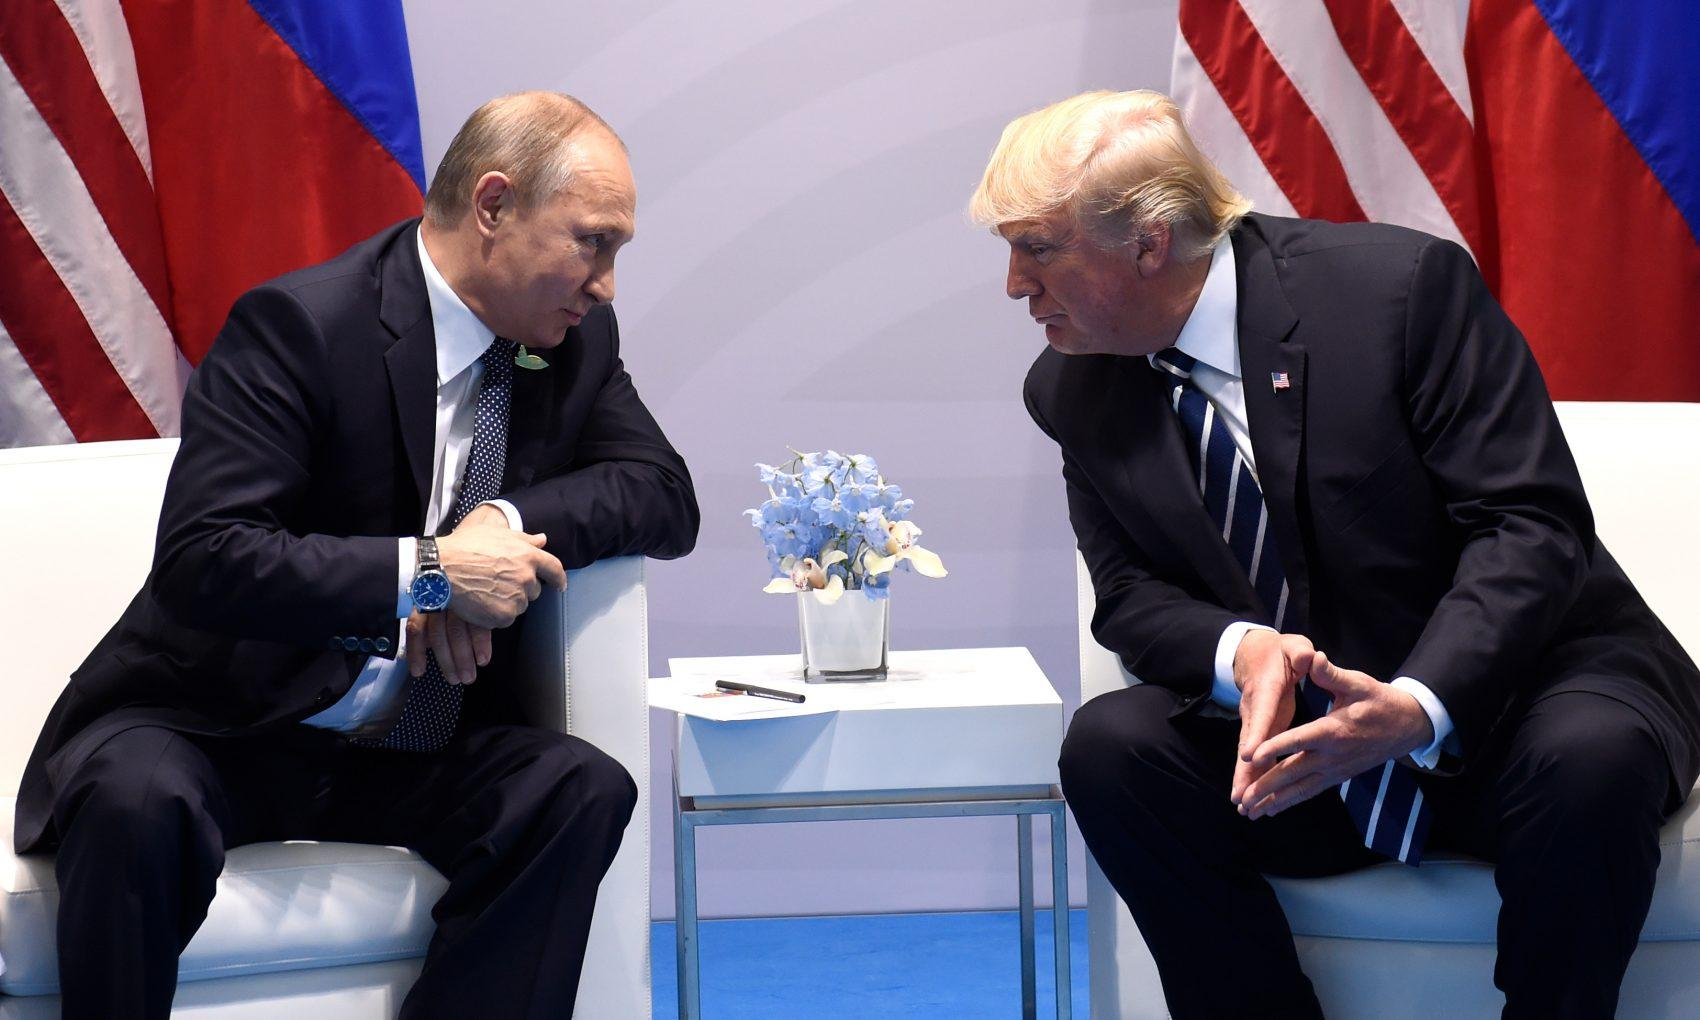 Kremlin denies 'secret meeting' between Trump and Putin